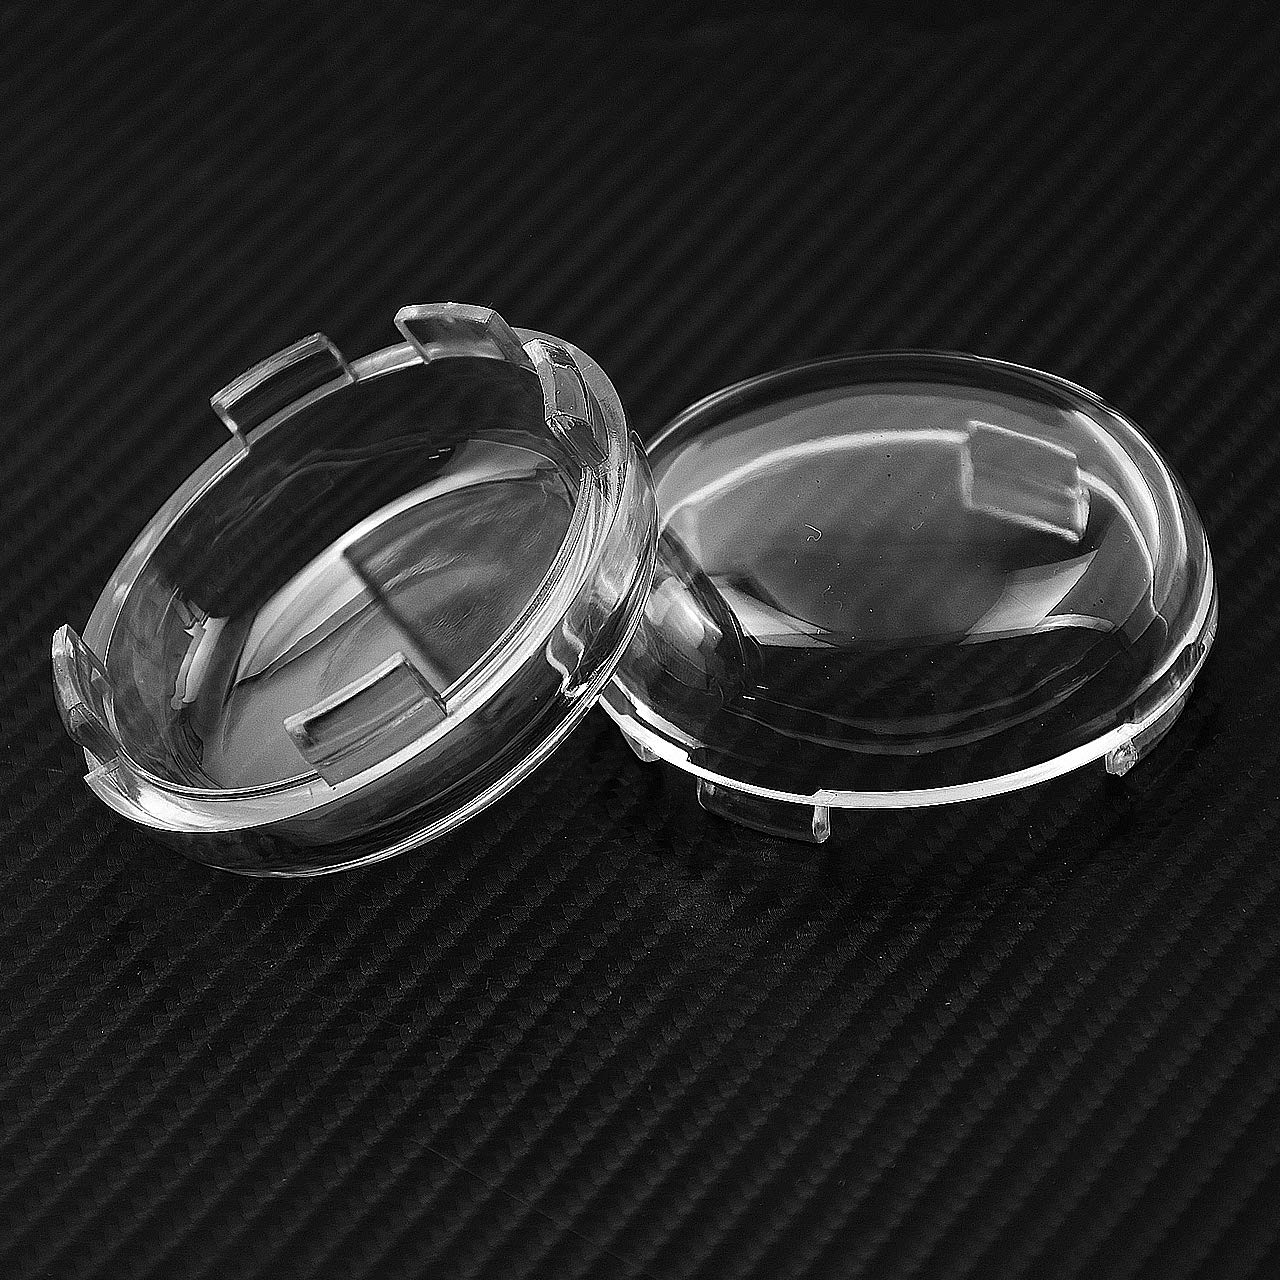 YHMTIVTU Bullet Turn Signal Light Lens Cover for Harley Sportster Street Glide Road King Softtail Dyna,2 Pcs Clear